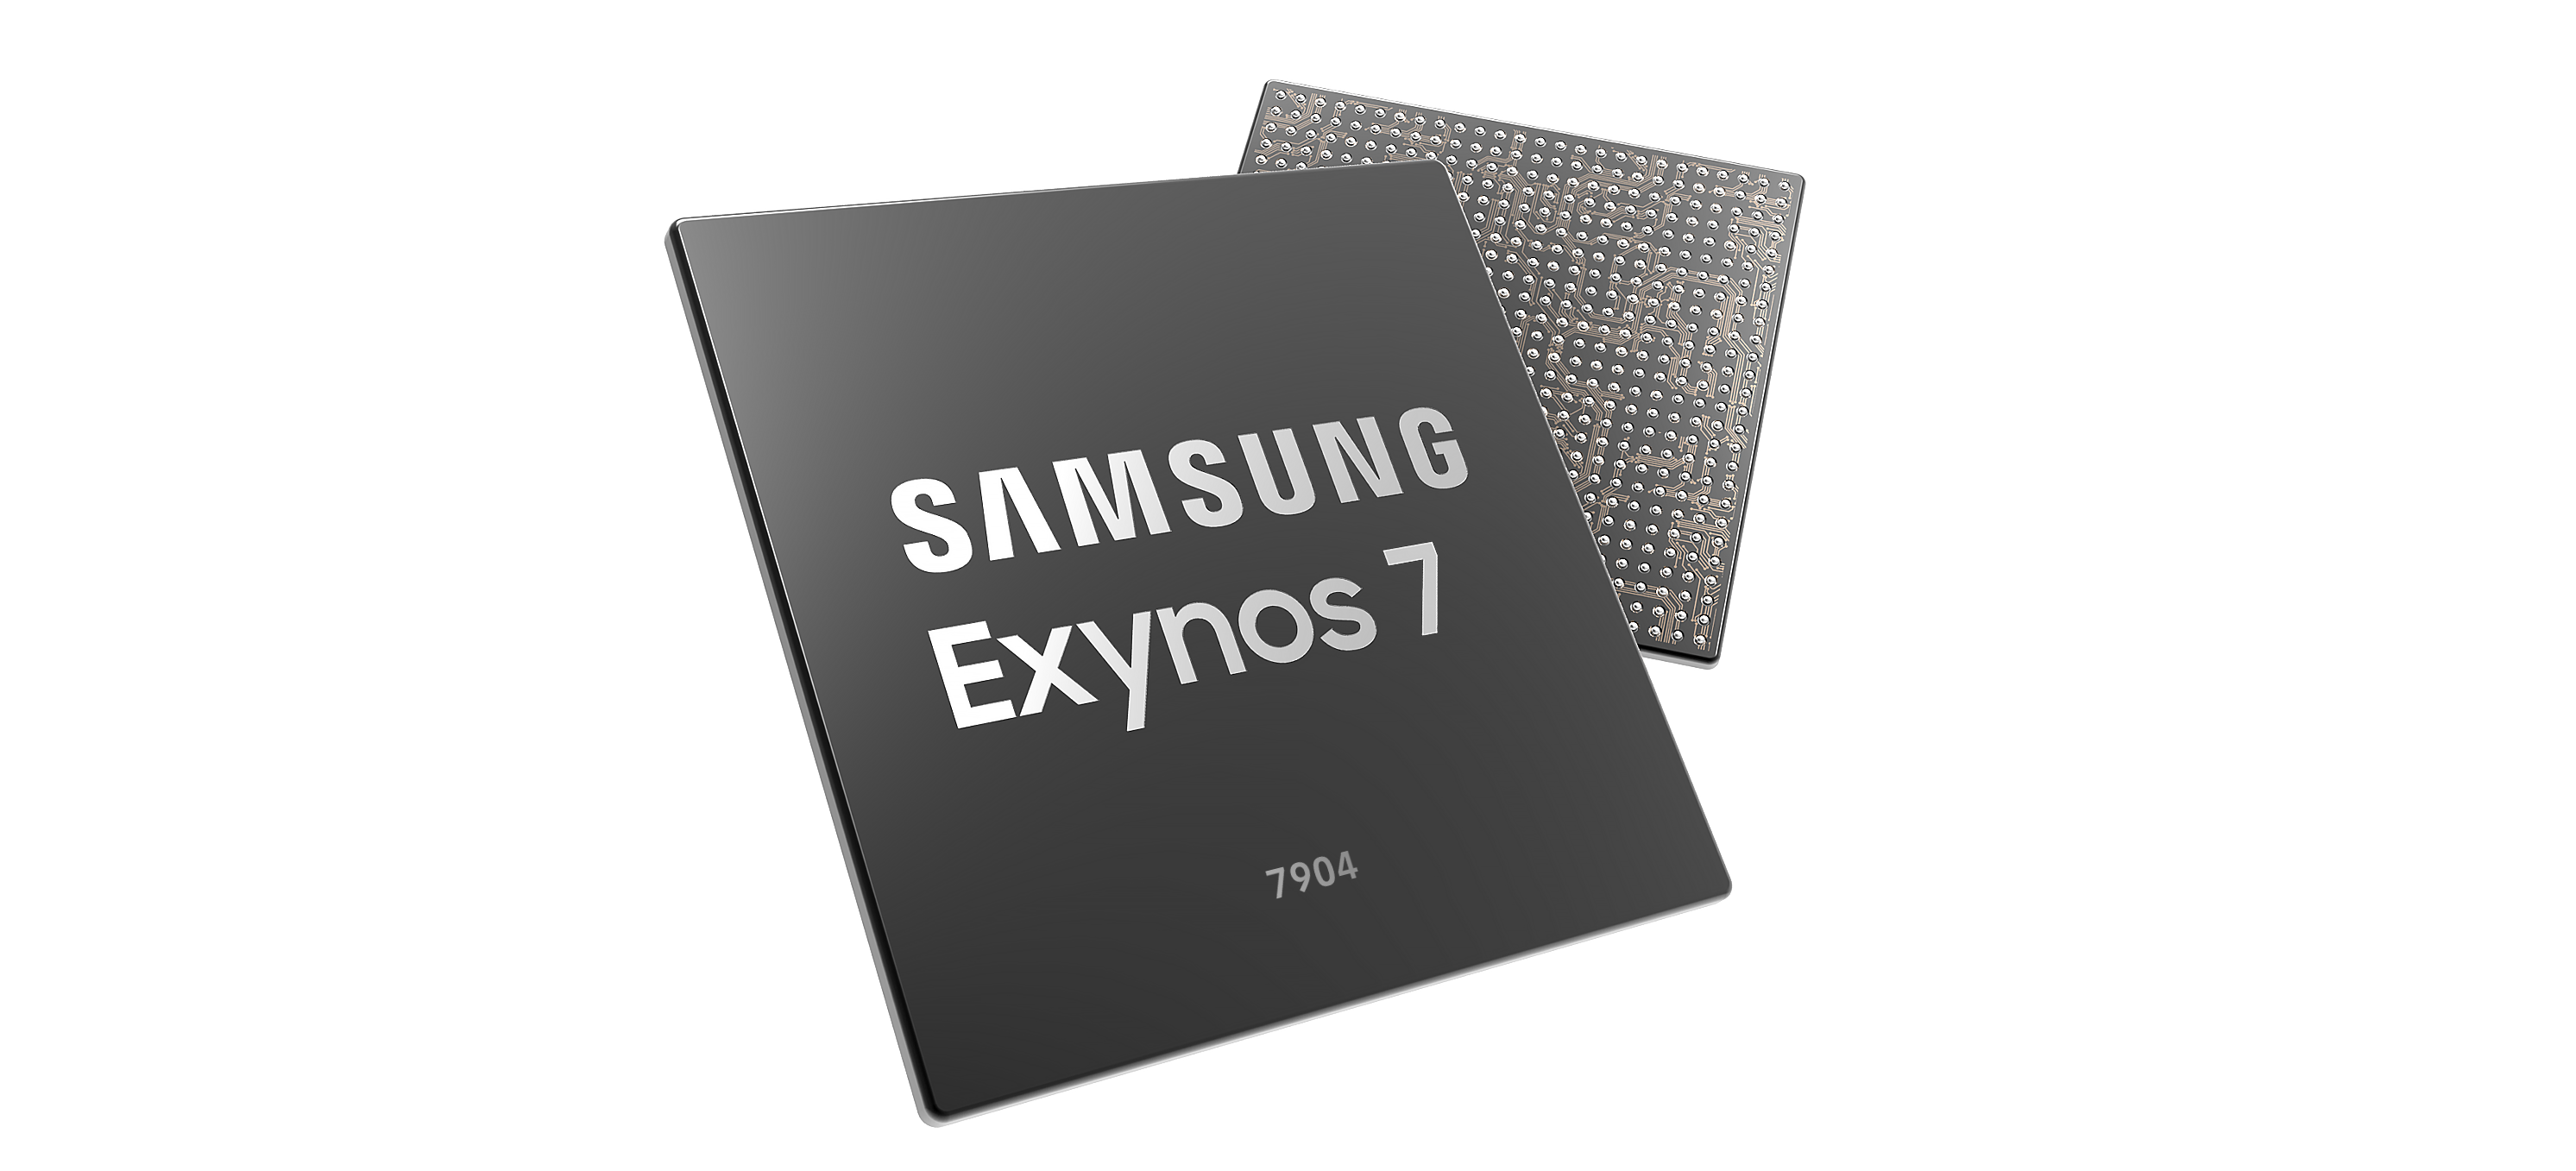 Samsung Unveiled Exynos 7904 Processor